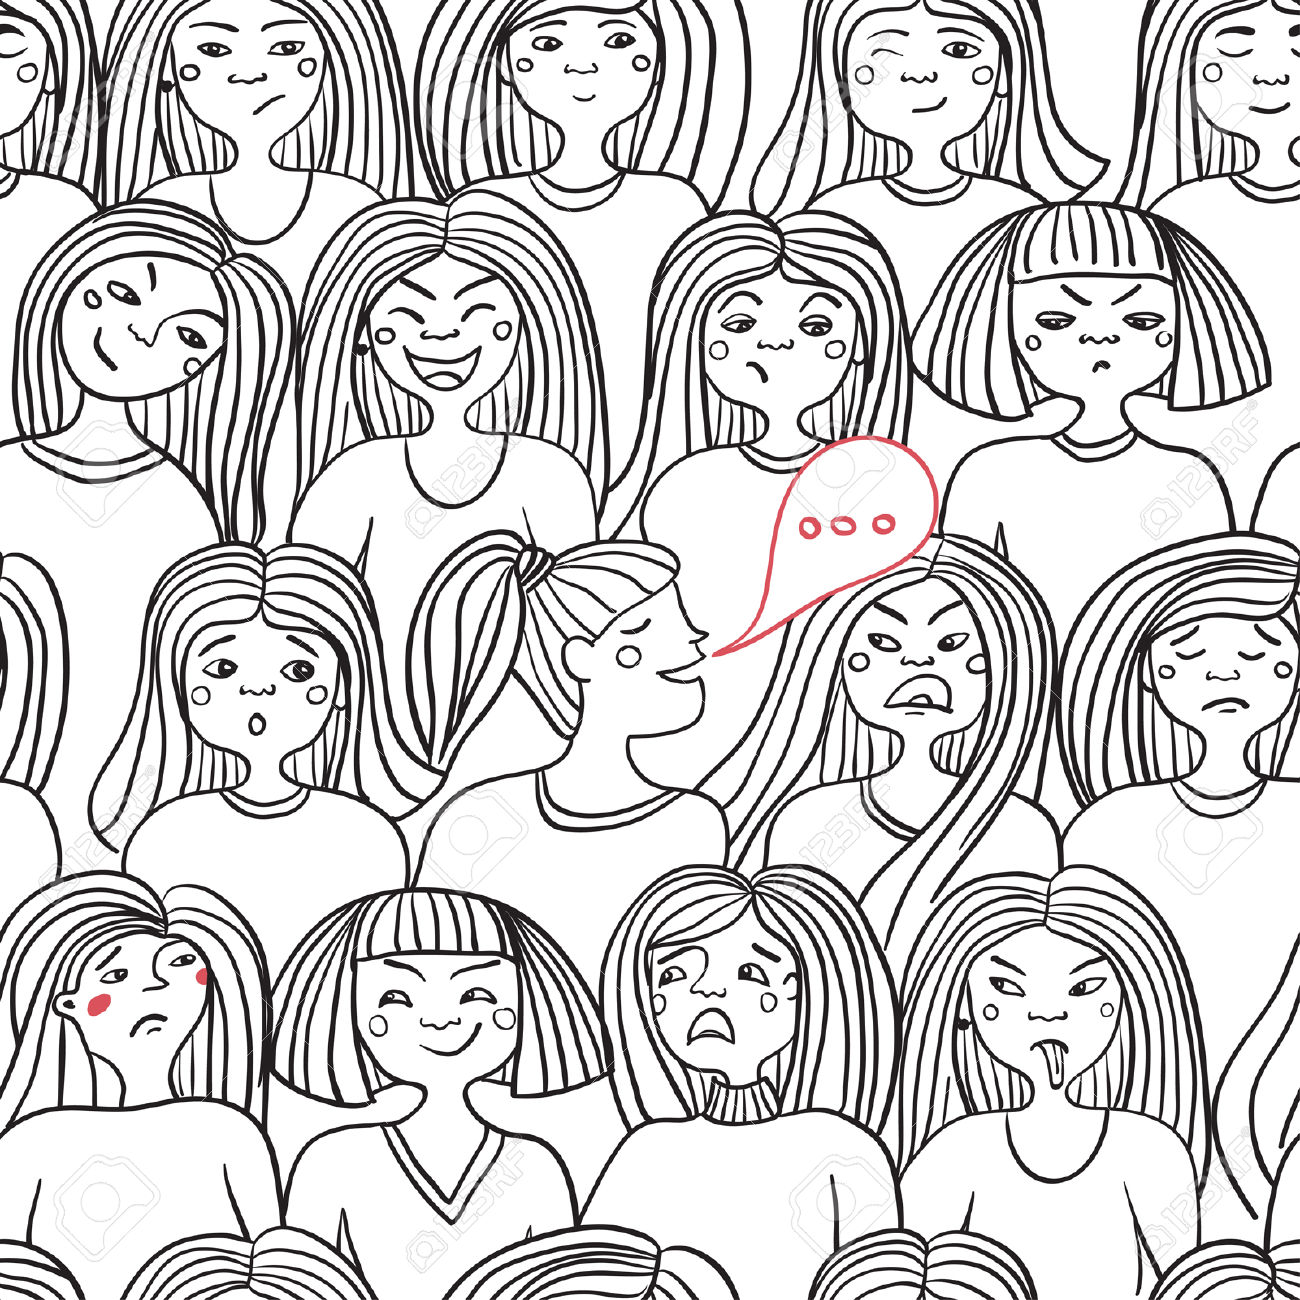 Seamless pattern of women expressing emotions on white background. Can be used as a background, pattern, backdrop, wallpaper or for packaging, bag template, etc.